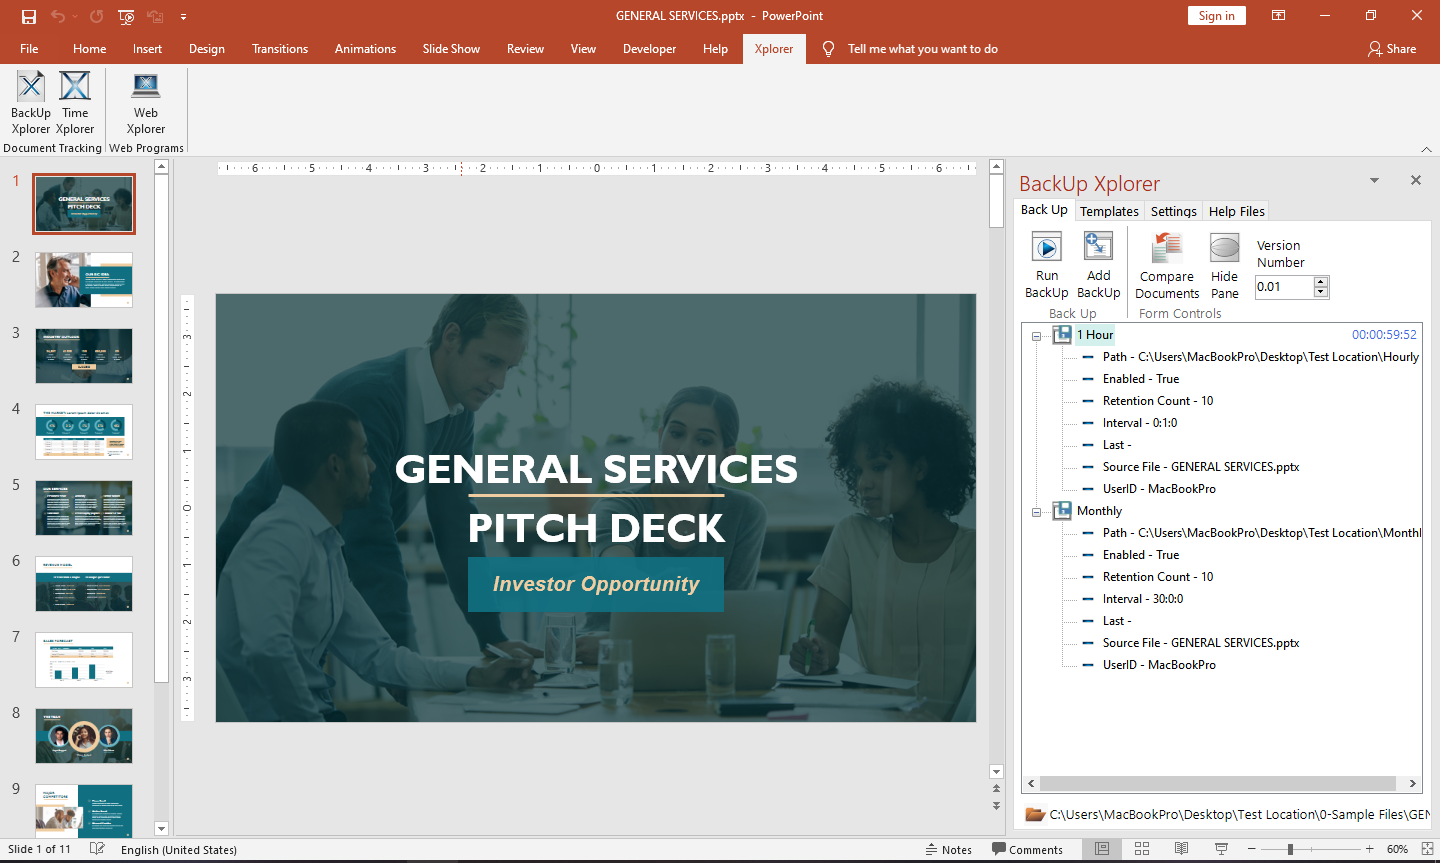 Task pane with Backup Xplorer shown in Microsoft PowerPoint.